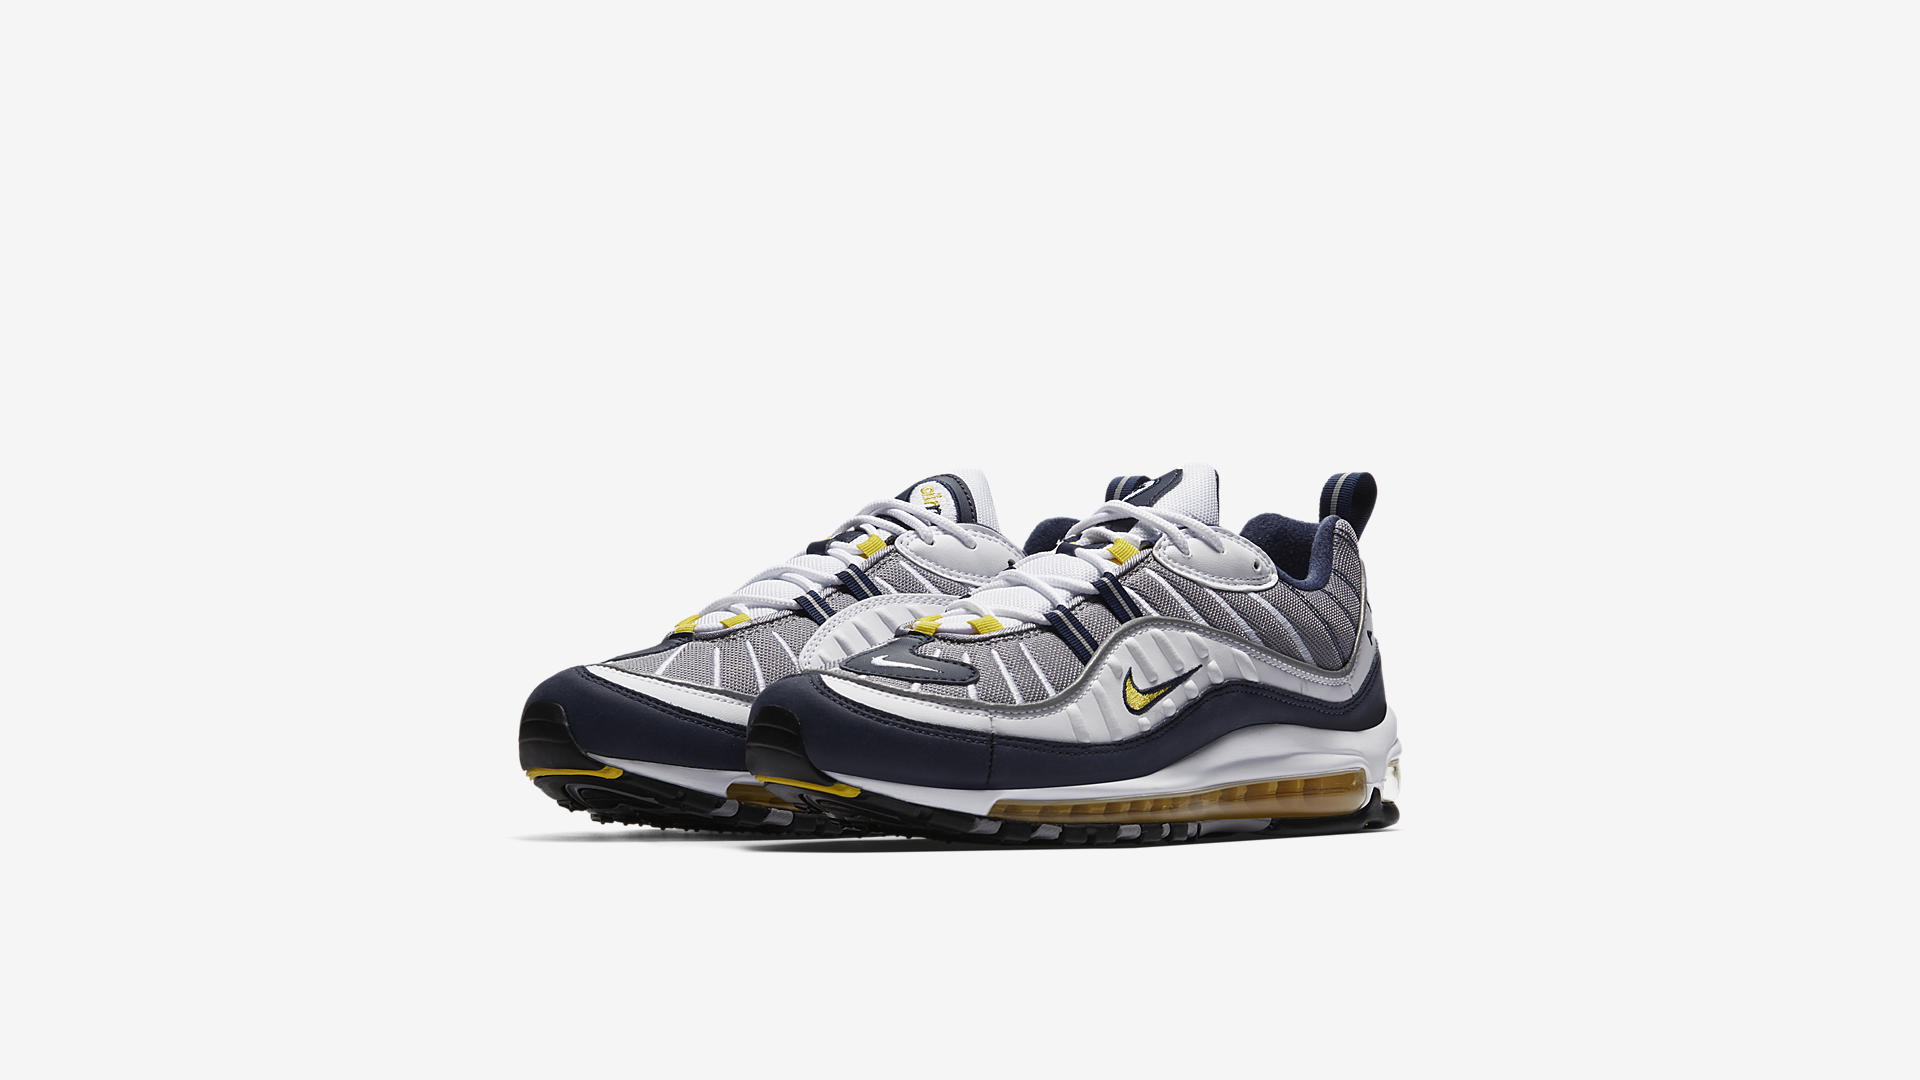 52249c1a2aa2e The Nike Air Max 98  Tour Yellow  Drops Friday - WearTesters